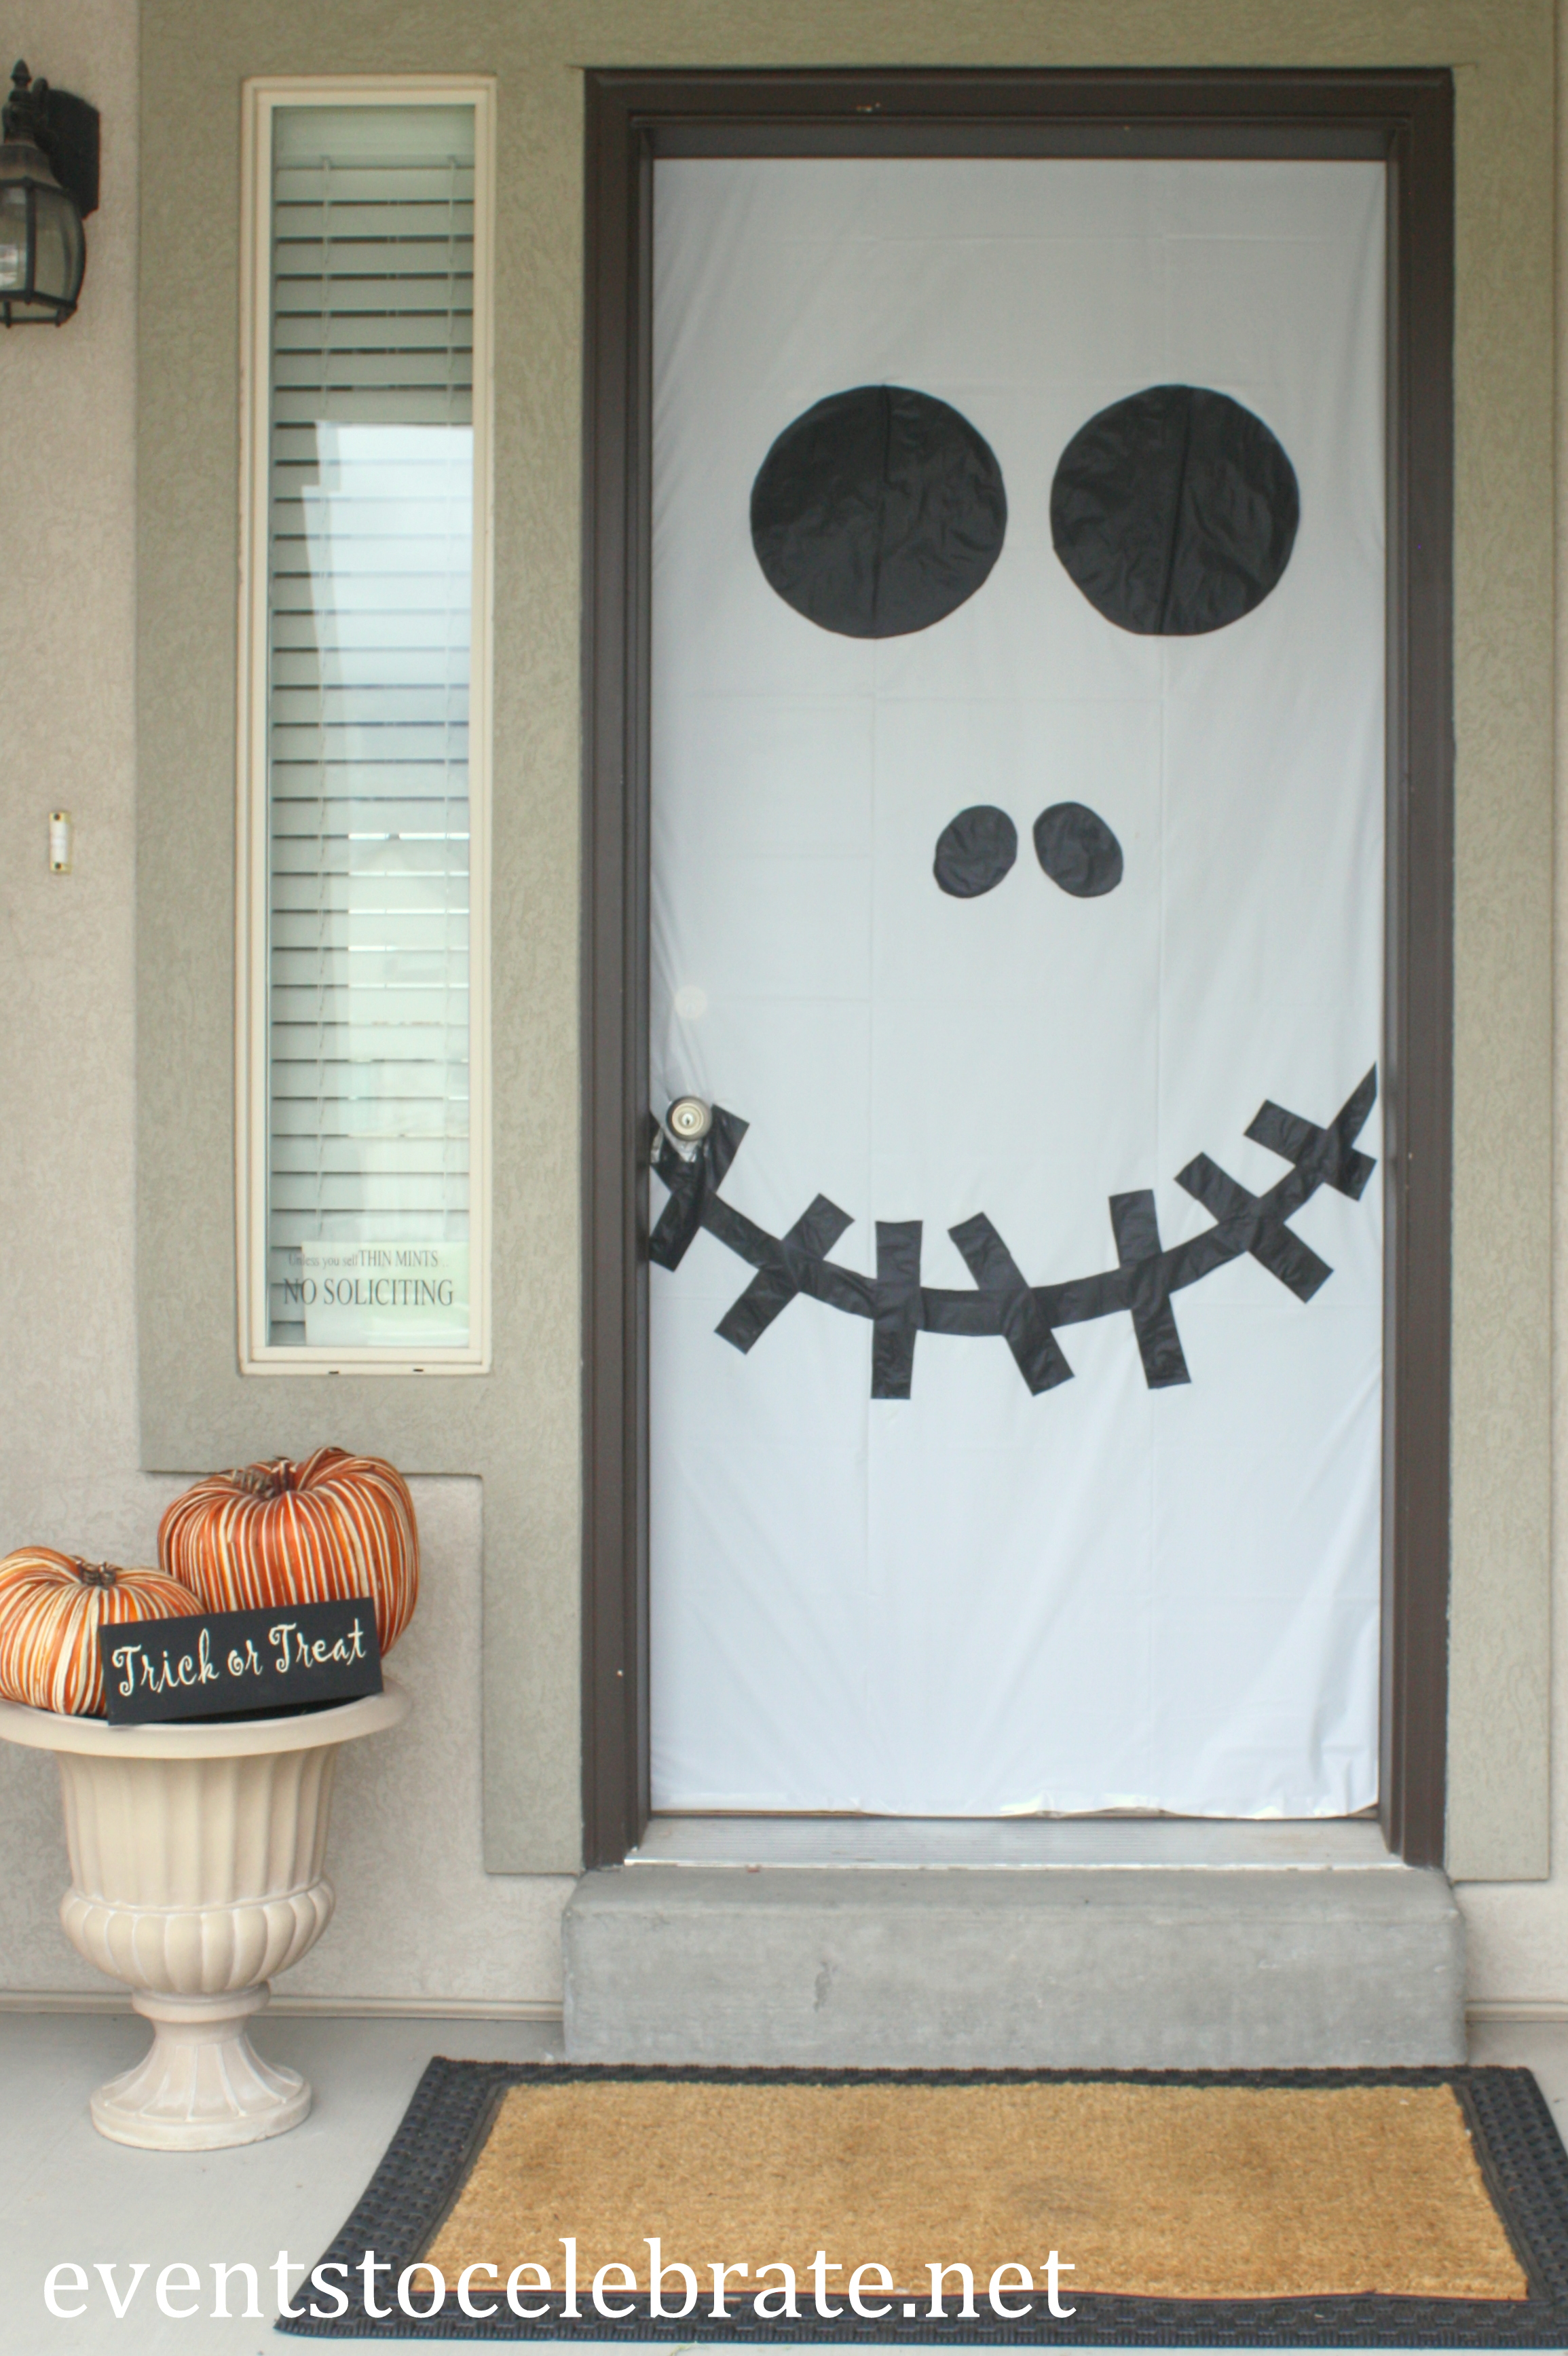 Halloween door window decorations events to celebrate for Picaportes para puertas